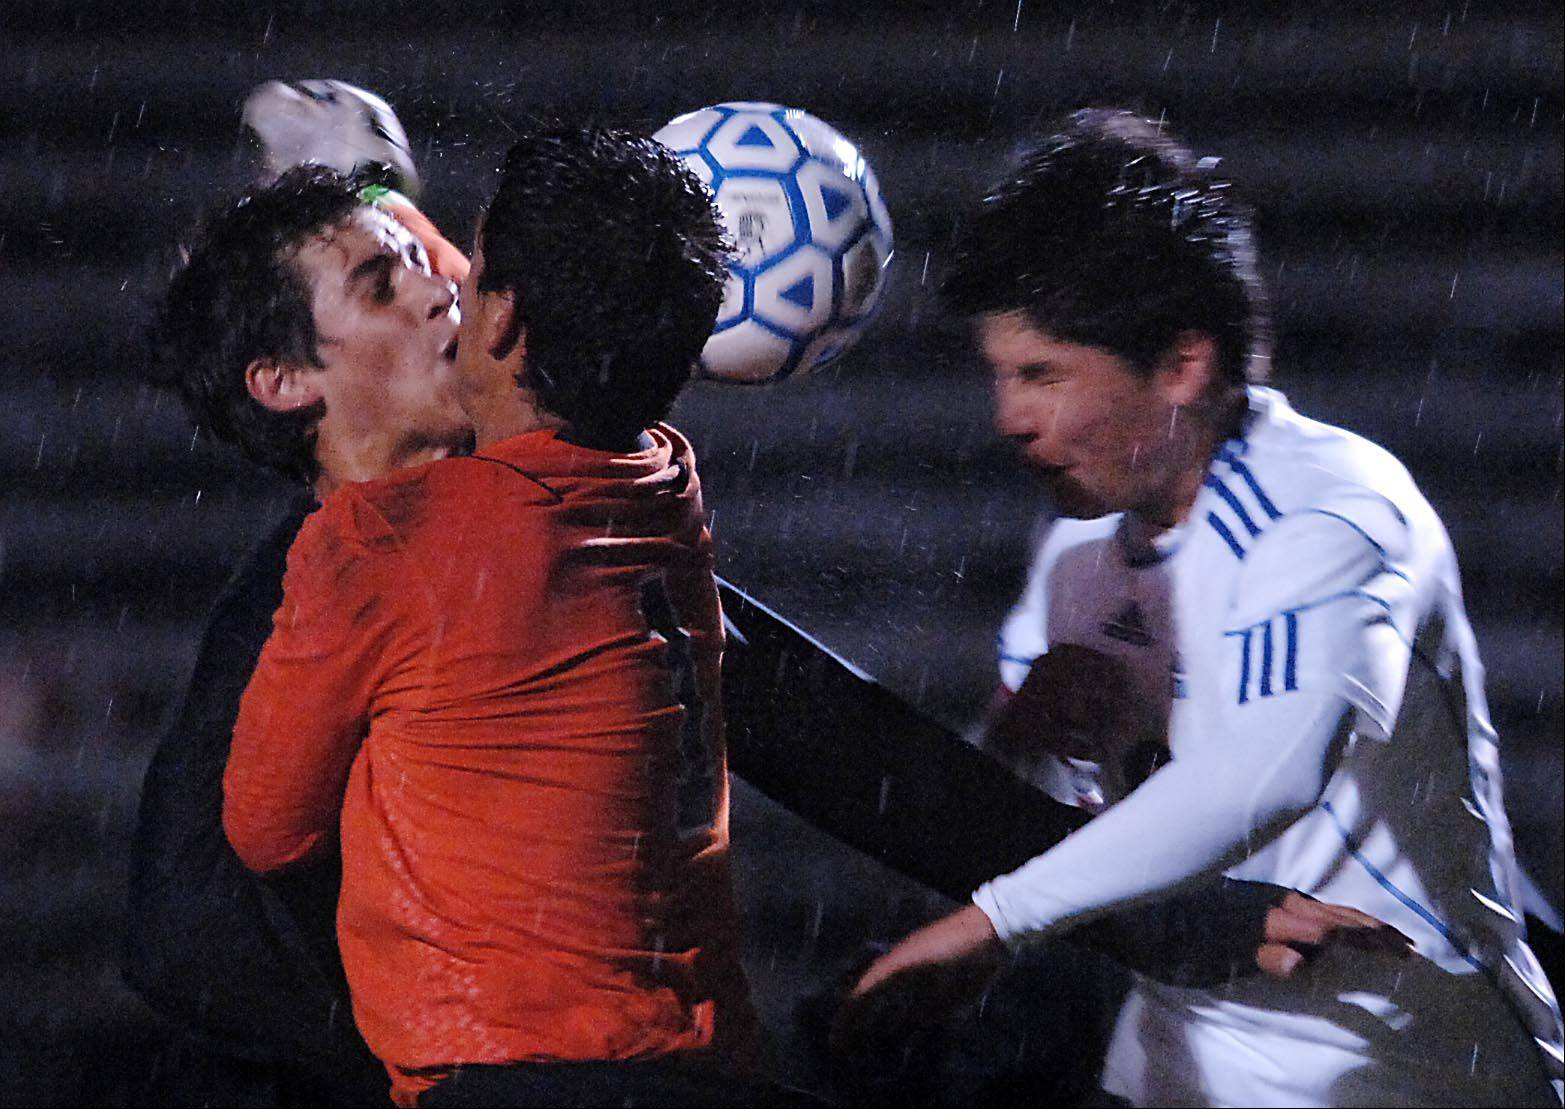 Metea Valley goalkeeper Gabe Gongora-Falla collides with teammate Jack Staton as Larkin's Erik Rodriguez tries to head the corner kick Thursday in Elgin. There was no goal on the play.